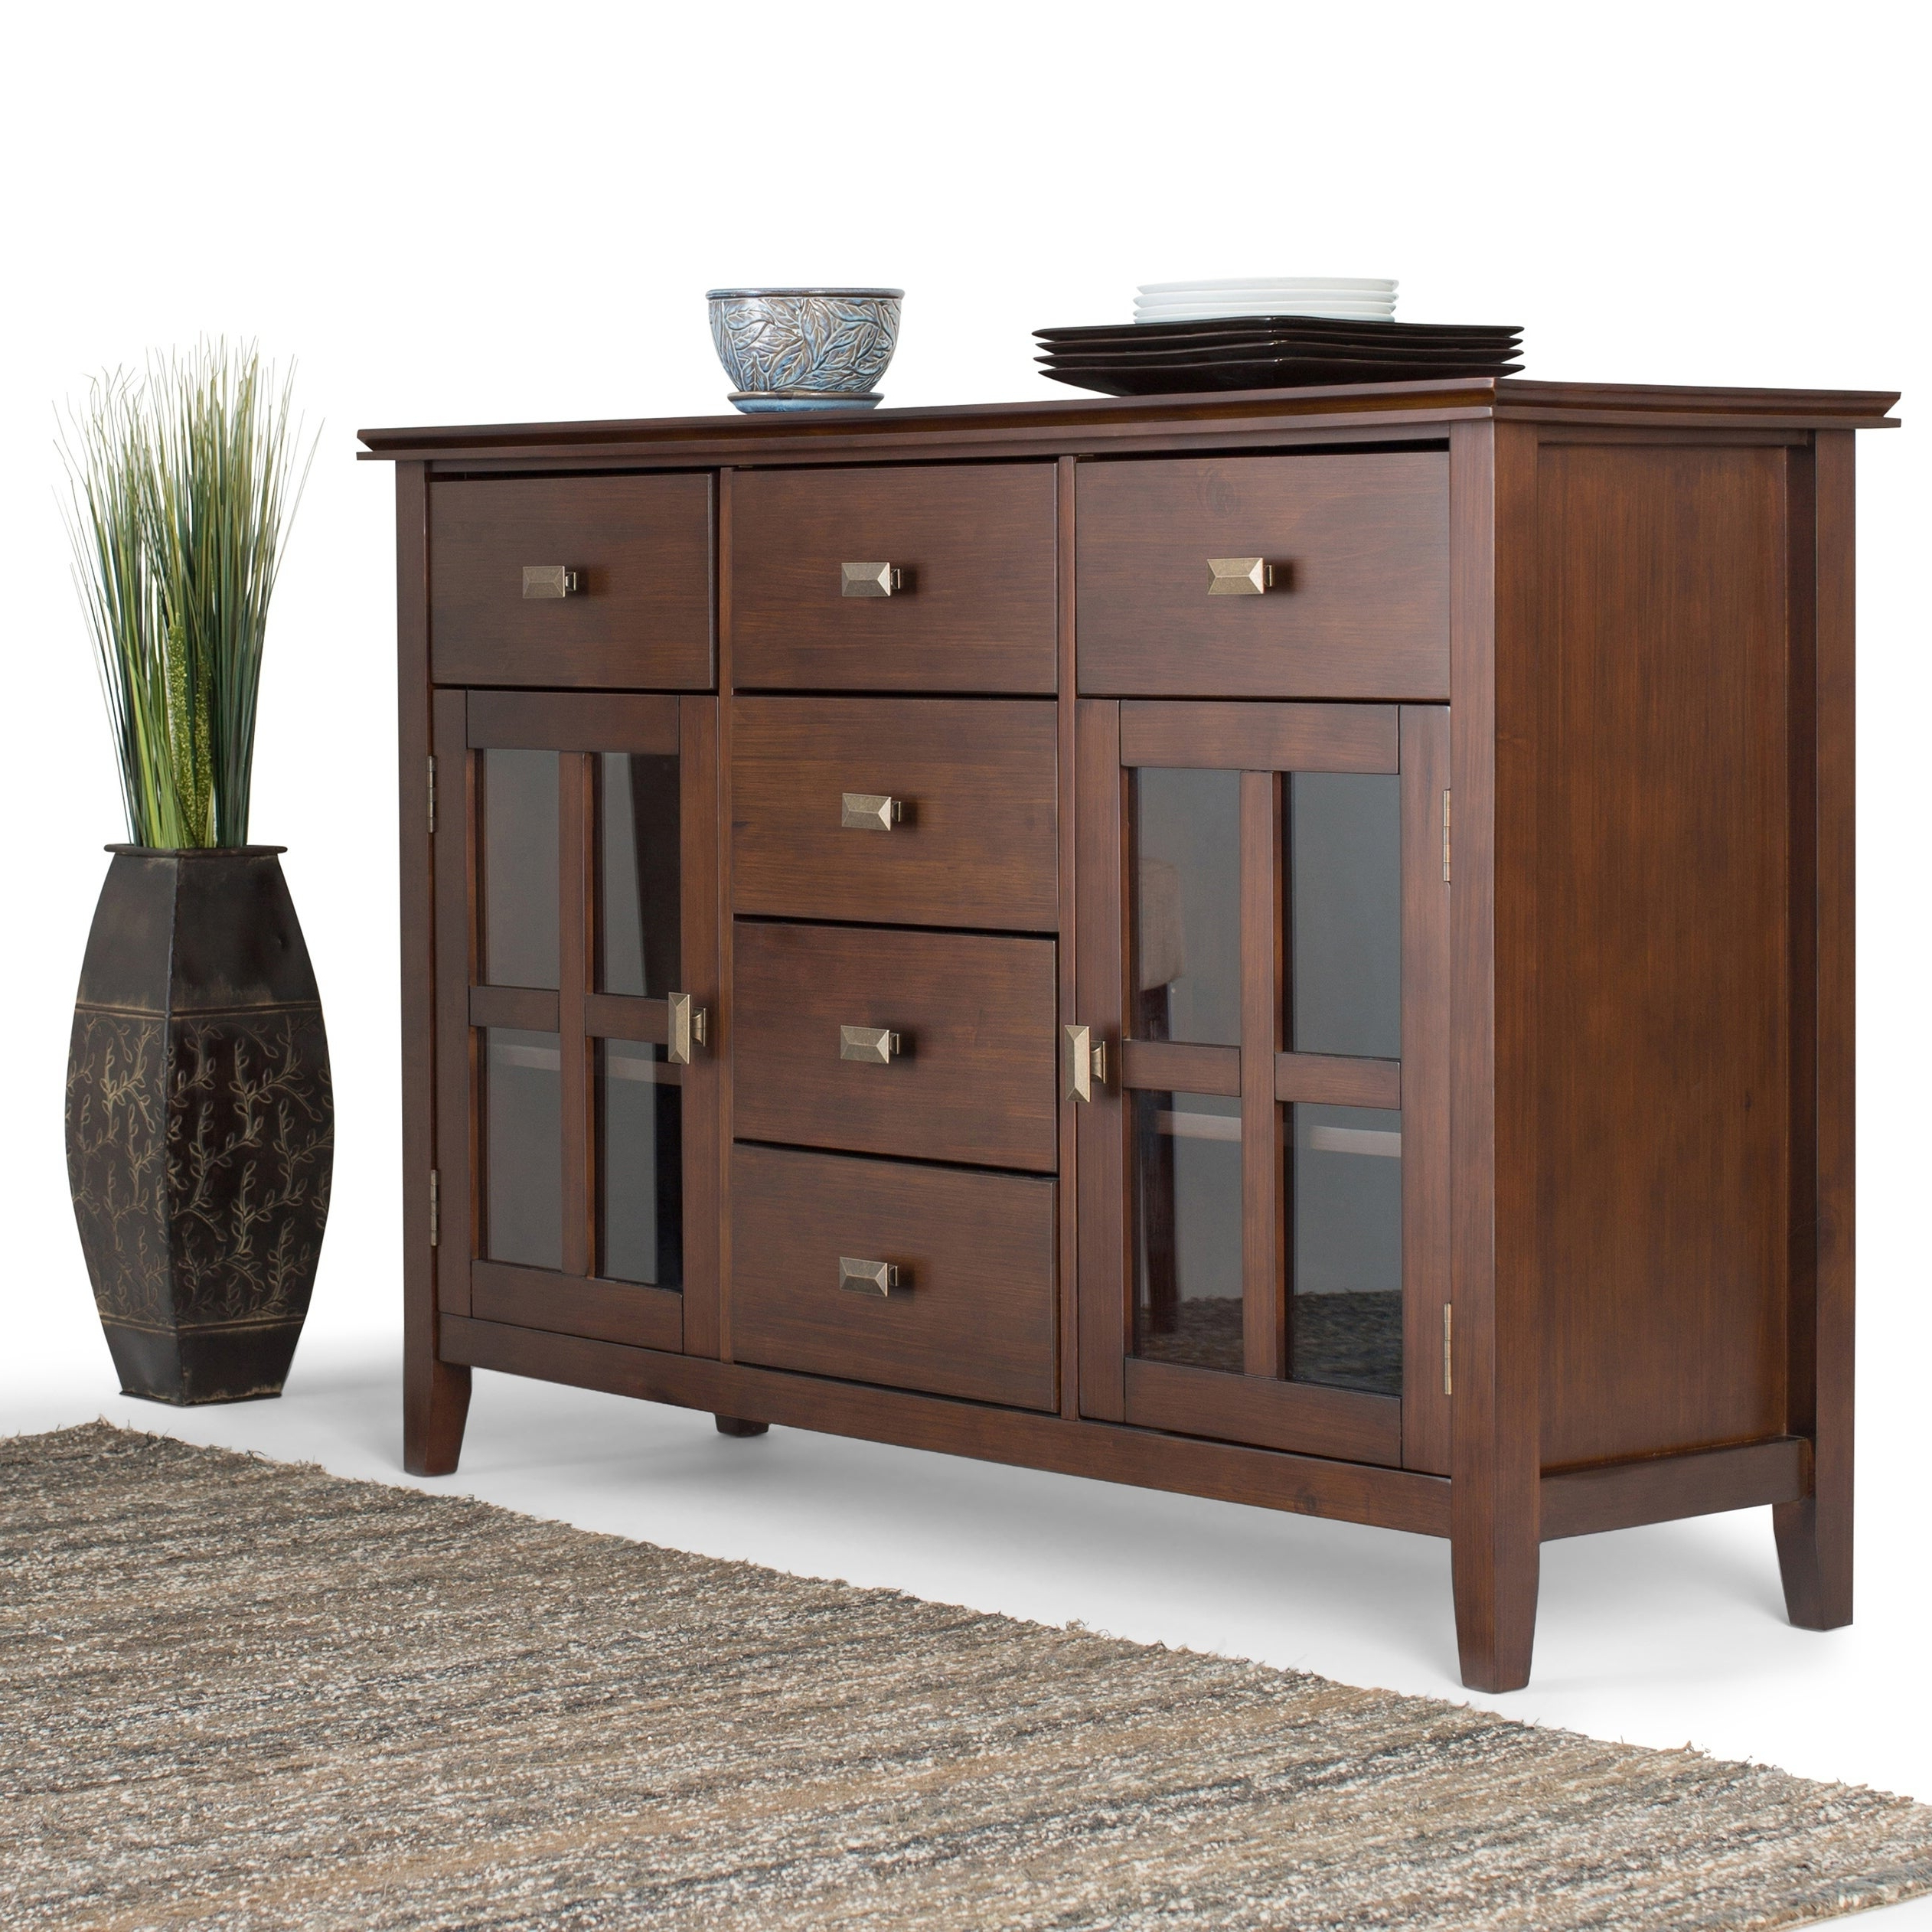 Wyndenhall Stratford Solid Wood 54 Inch Wide Contemporary Sideboard Buffet  Credenza – 54 Inch Wide Throughout Contemporary Wooden Buffets With One Side Door Storage Cabinets And Two Drawers (View 20 of 20)